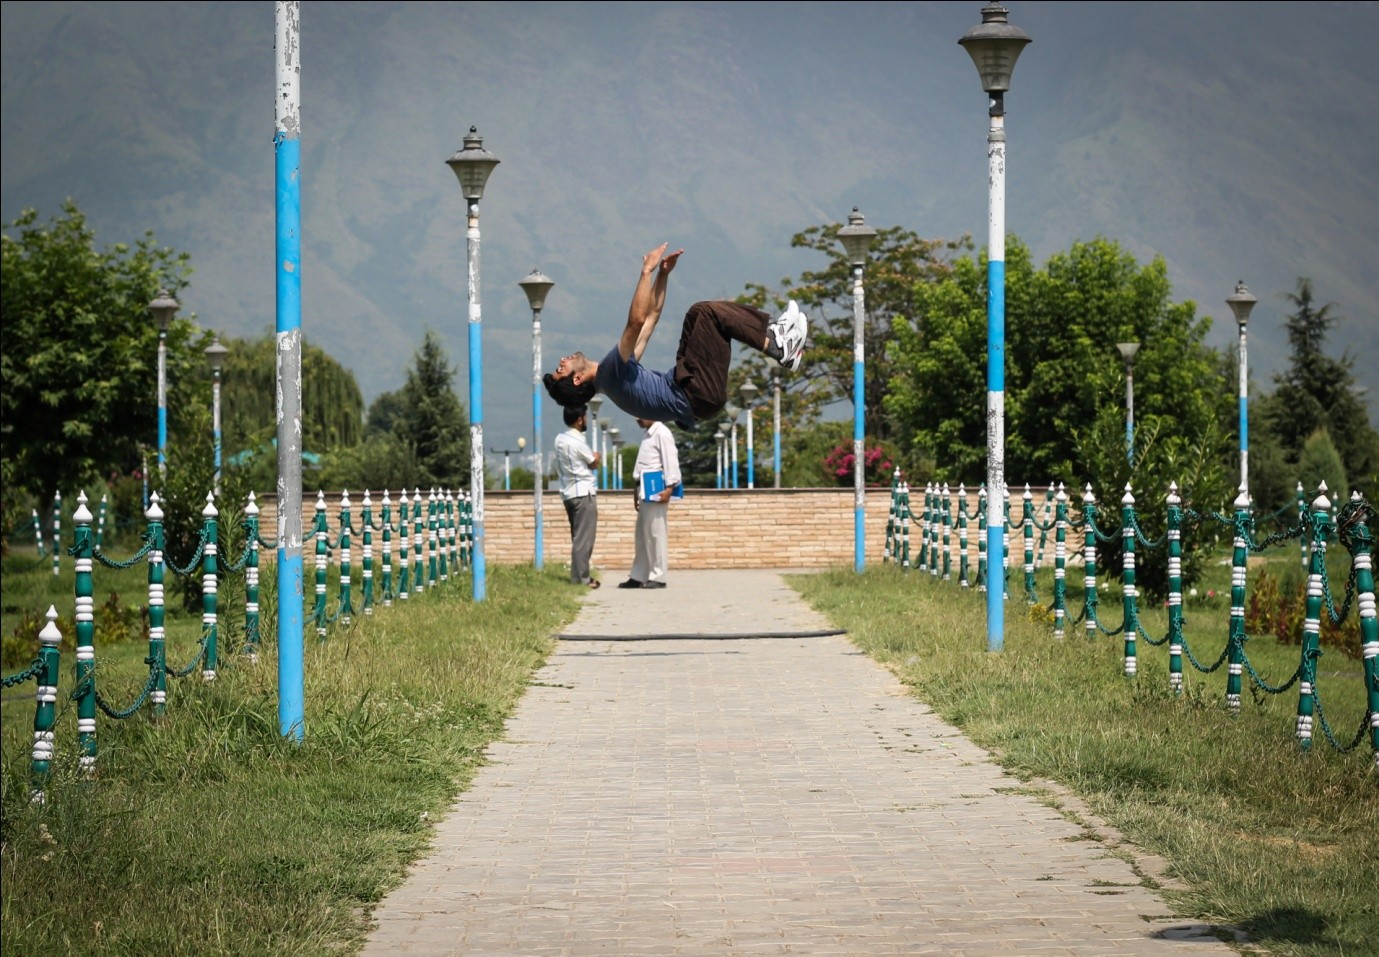 Zahid shah - first traceur of Kashmir, doing a parkour move. Photo Credits — Hashim Ahmad Hakeem